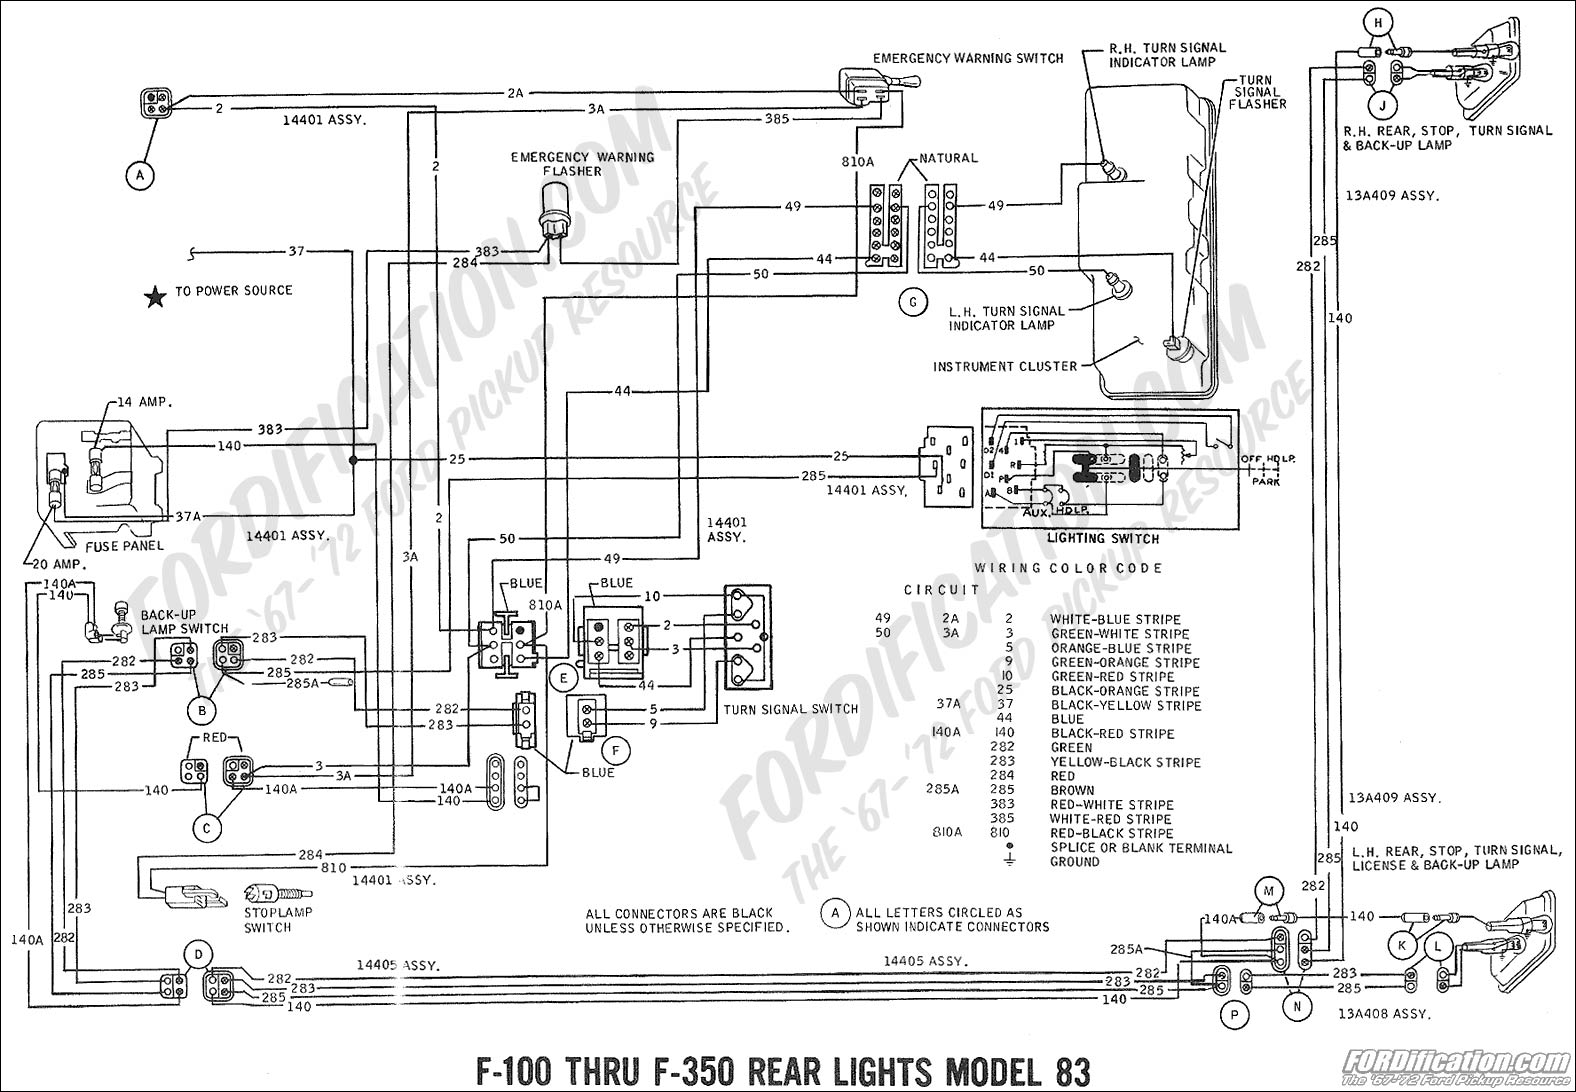 alternator wiring diagram on 1962 ford steering column diagram rh linxglobal co Ford Truck Alternator Diagram Ford 3 Wire Alternator Diagram